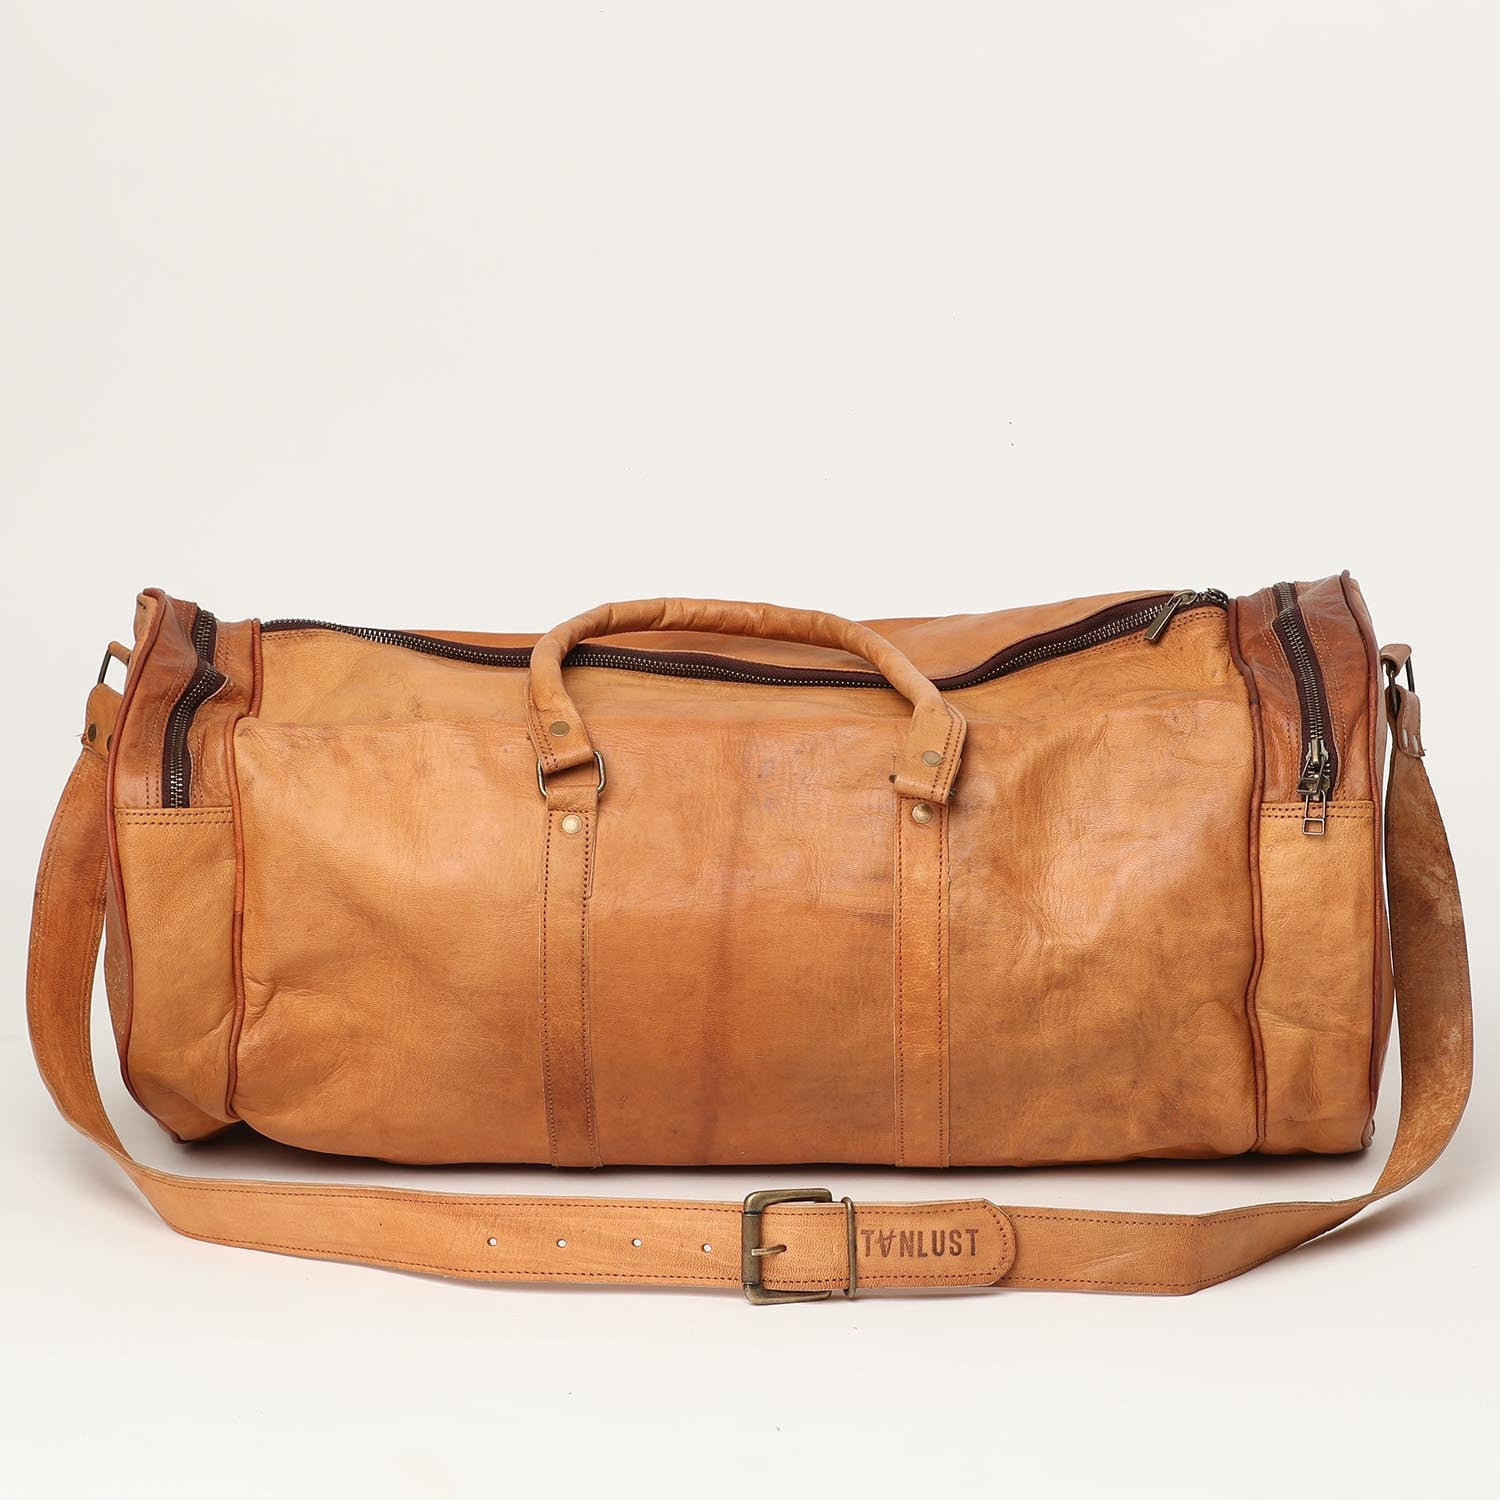 Sports Duffel Bag - leather bags